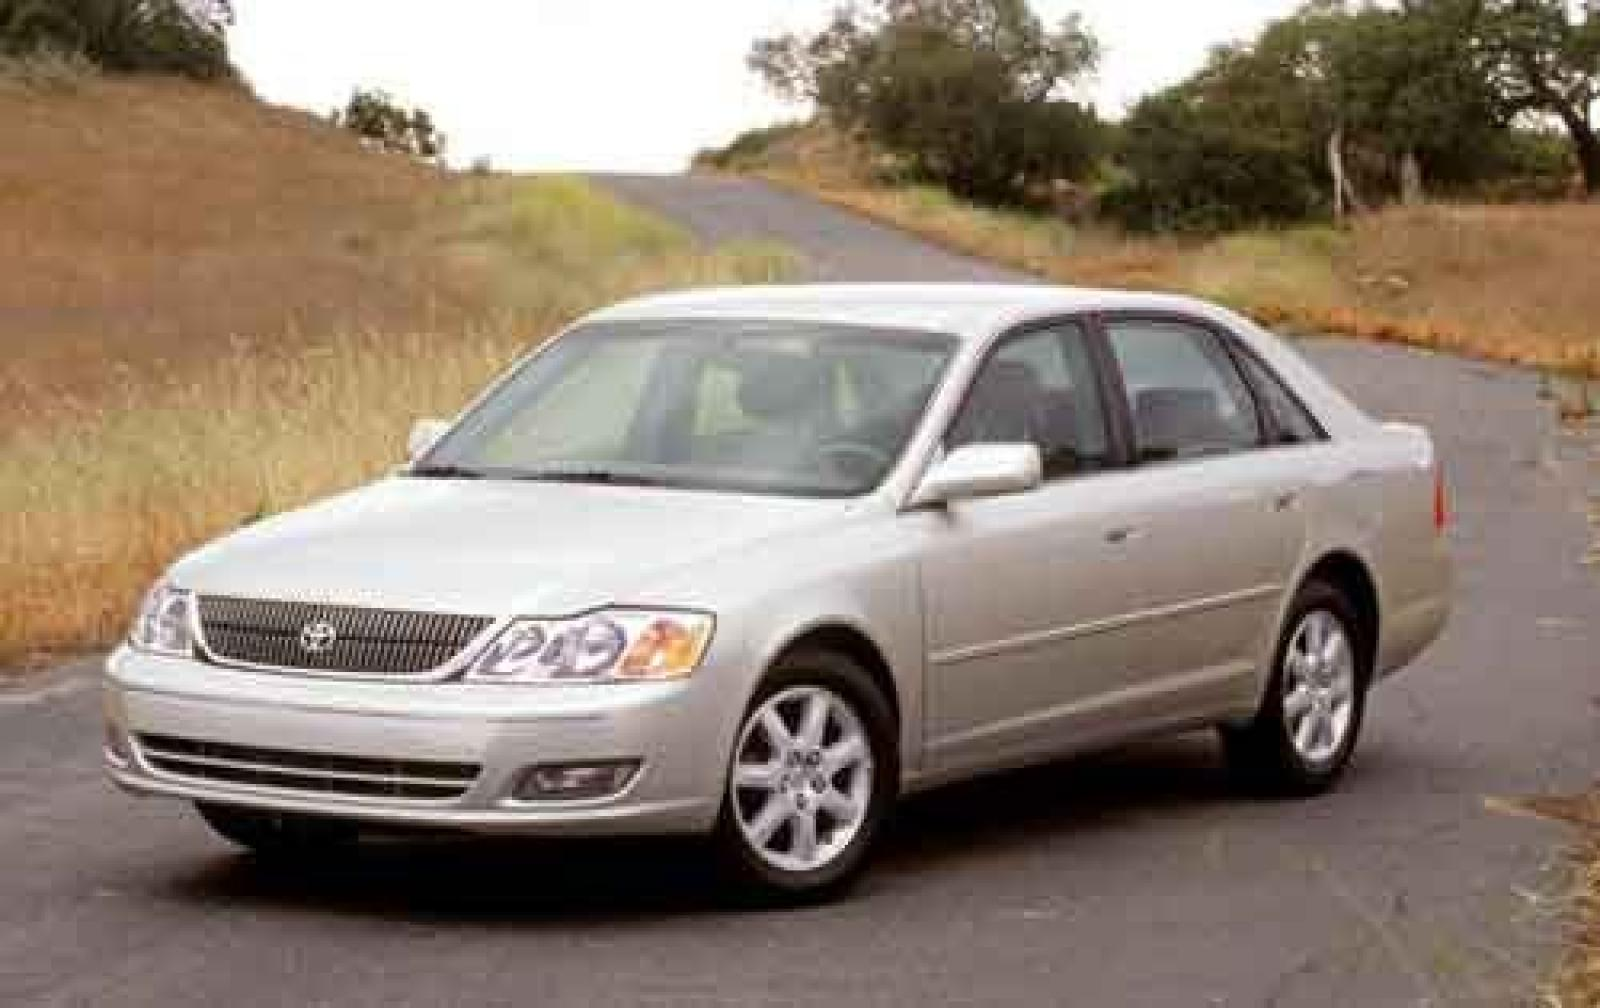 2002 Toyota Avalon Information And Photos Zombiedrive 04 Wiring 1 800 1024 1280 1600 Origin